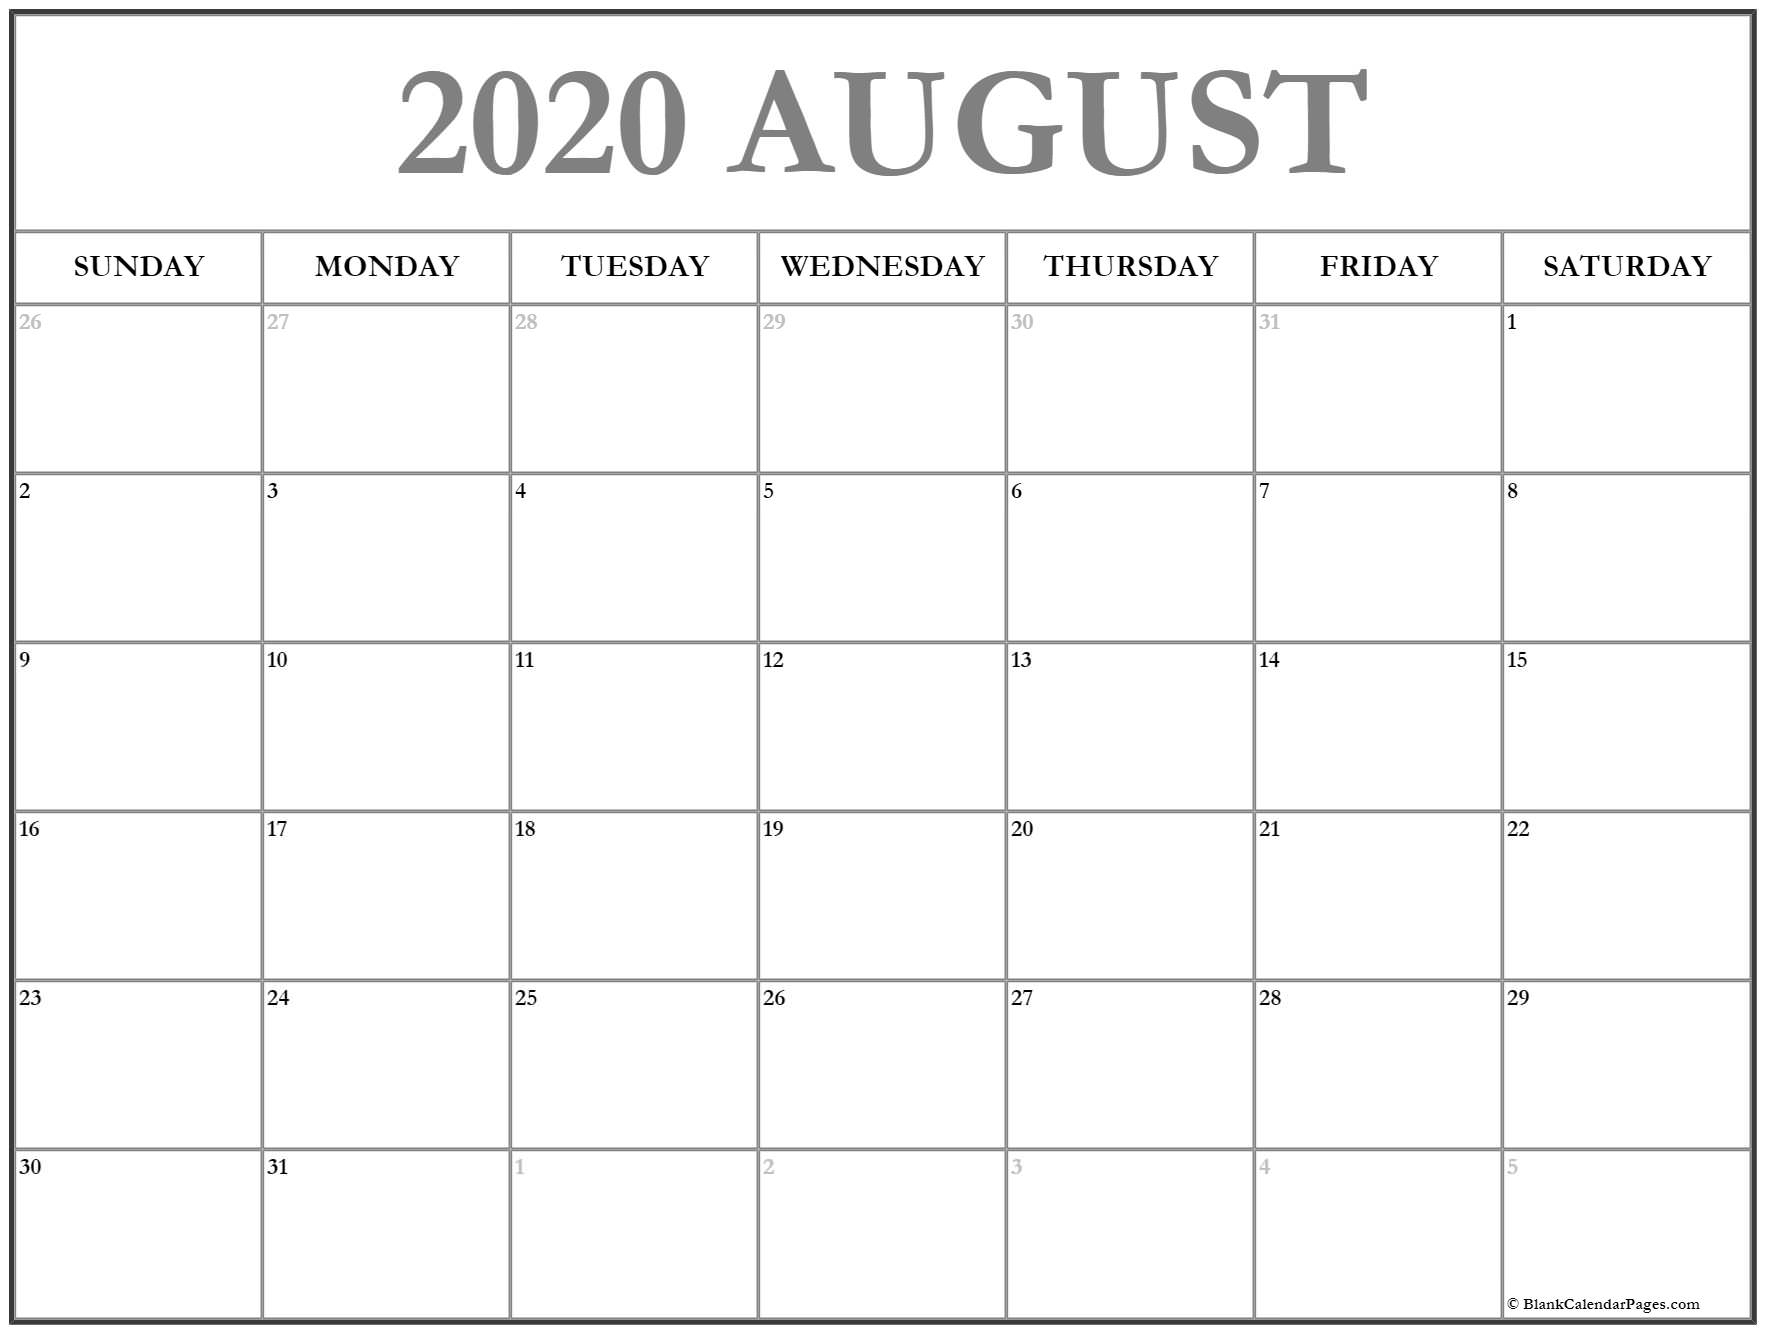 August 2020 Calendar | Free Printable Monthly Calendars inside 2020 Printable Calendar Free That Start With Monday